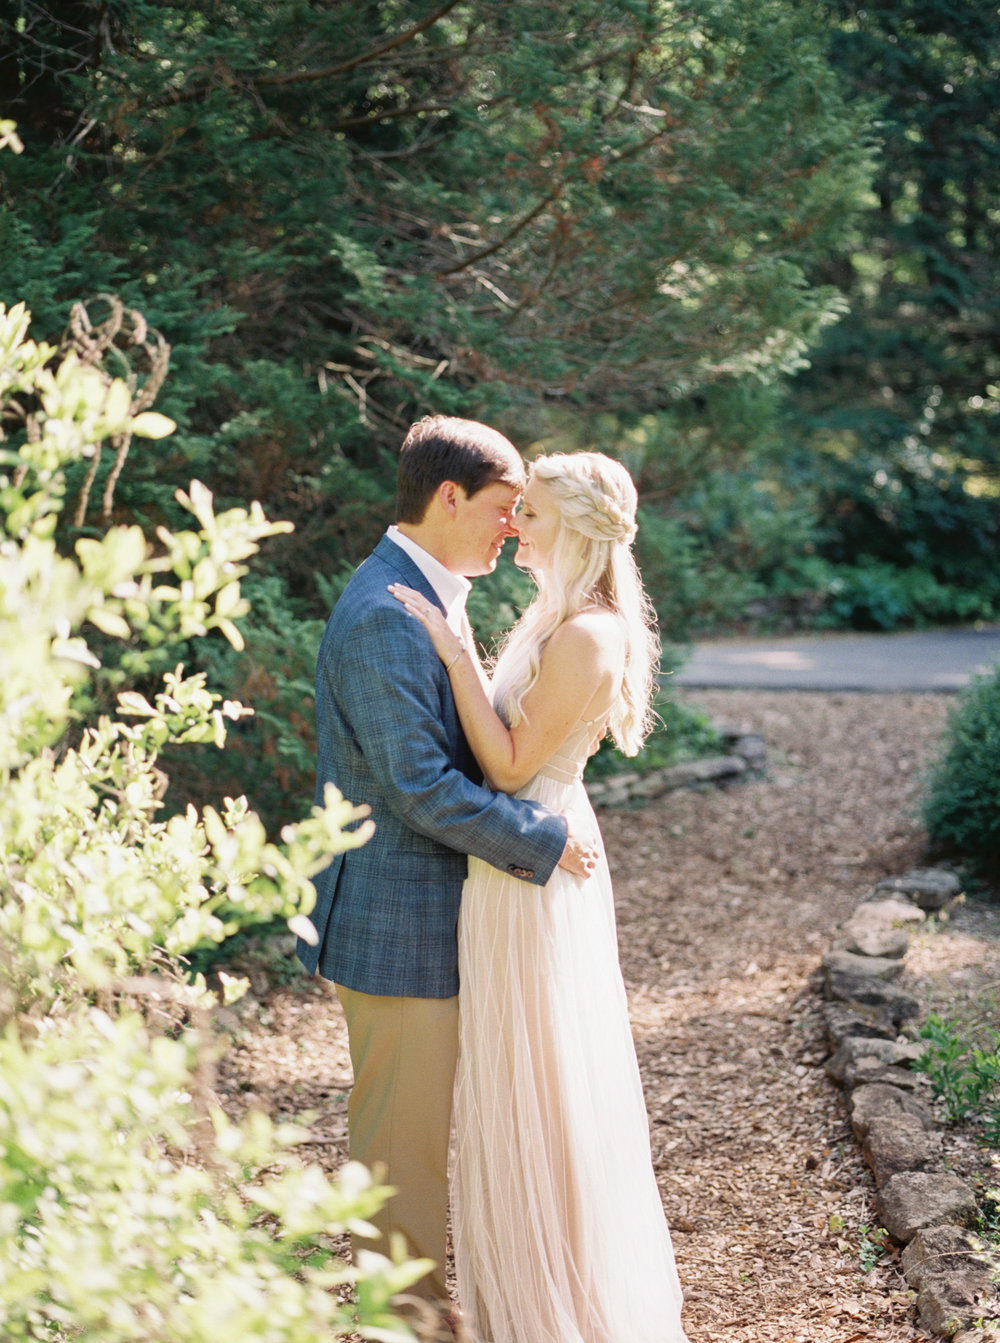 Erin_Johnny_Engagement_Dunaway_Gardens_Georgia_Film_Fallen_Photography-42.JPG